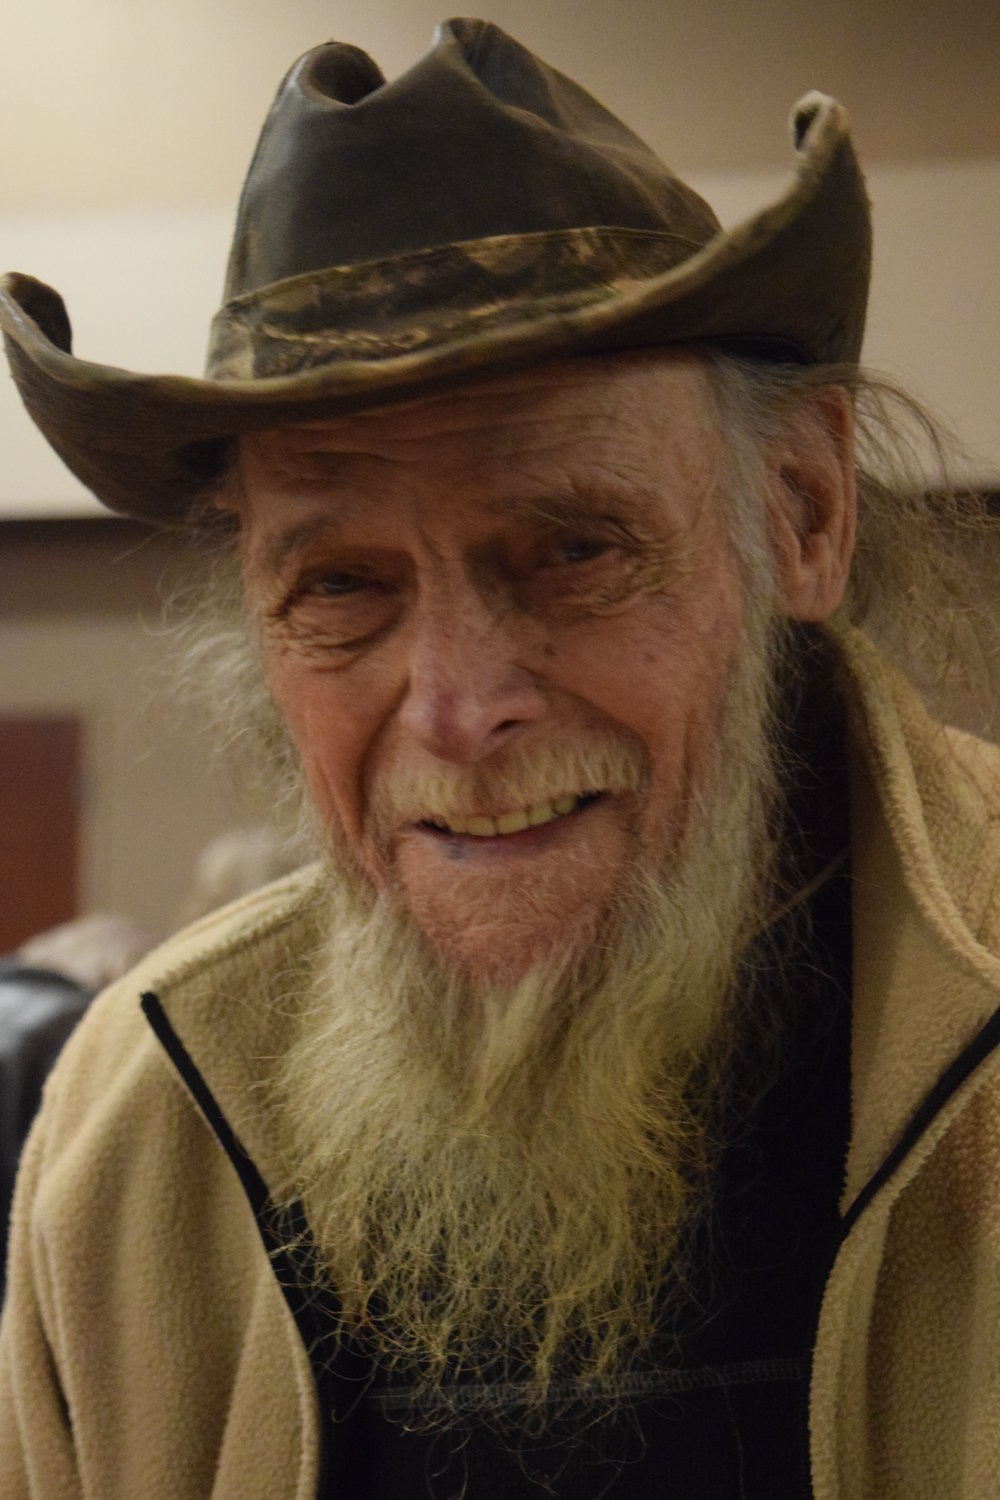 Spinny, former taxidermist and all around interesting guy. If you run into him at a show ask him about the story of Popcorn Sutton.